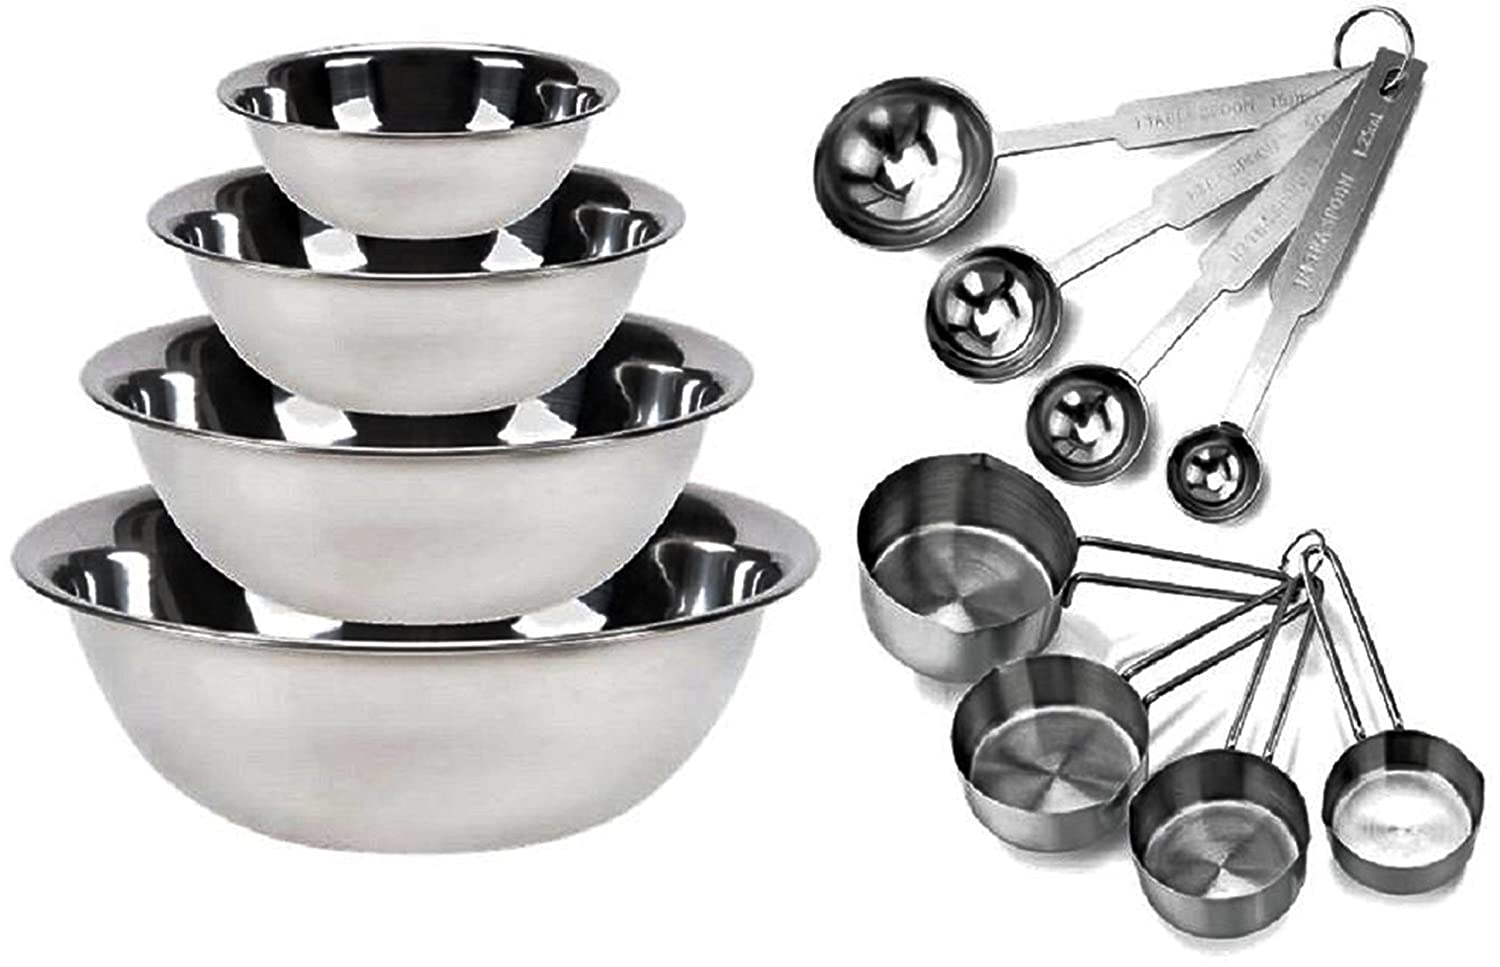 Kitchen MissionTM Stainless Steel Mixing Bowls 1.5,3,4, and 5 quart.